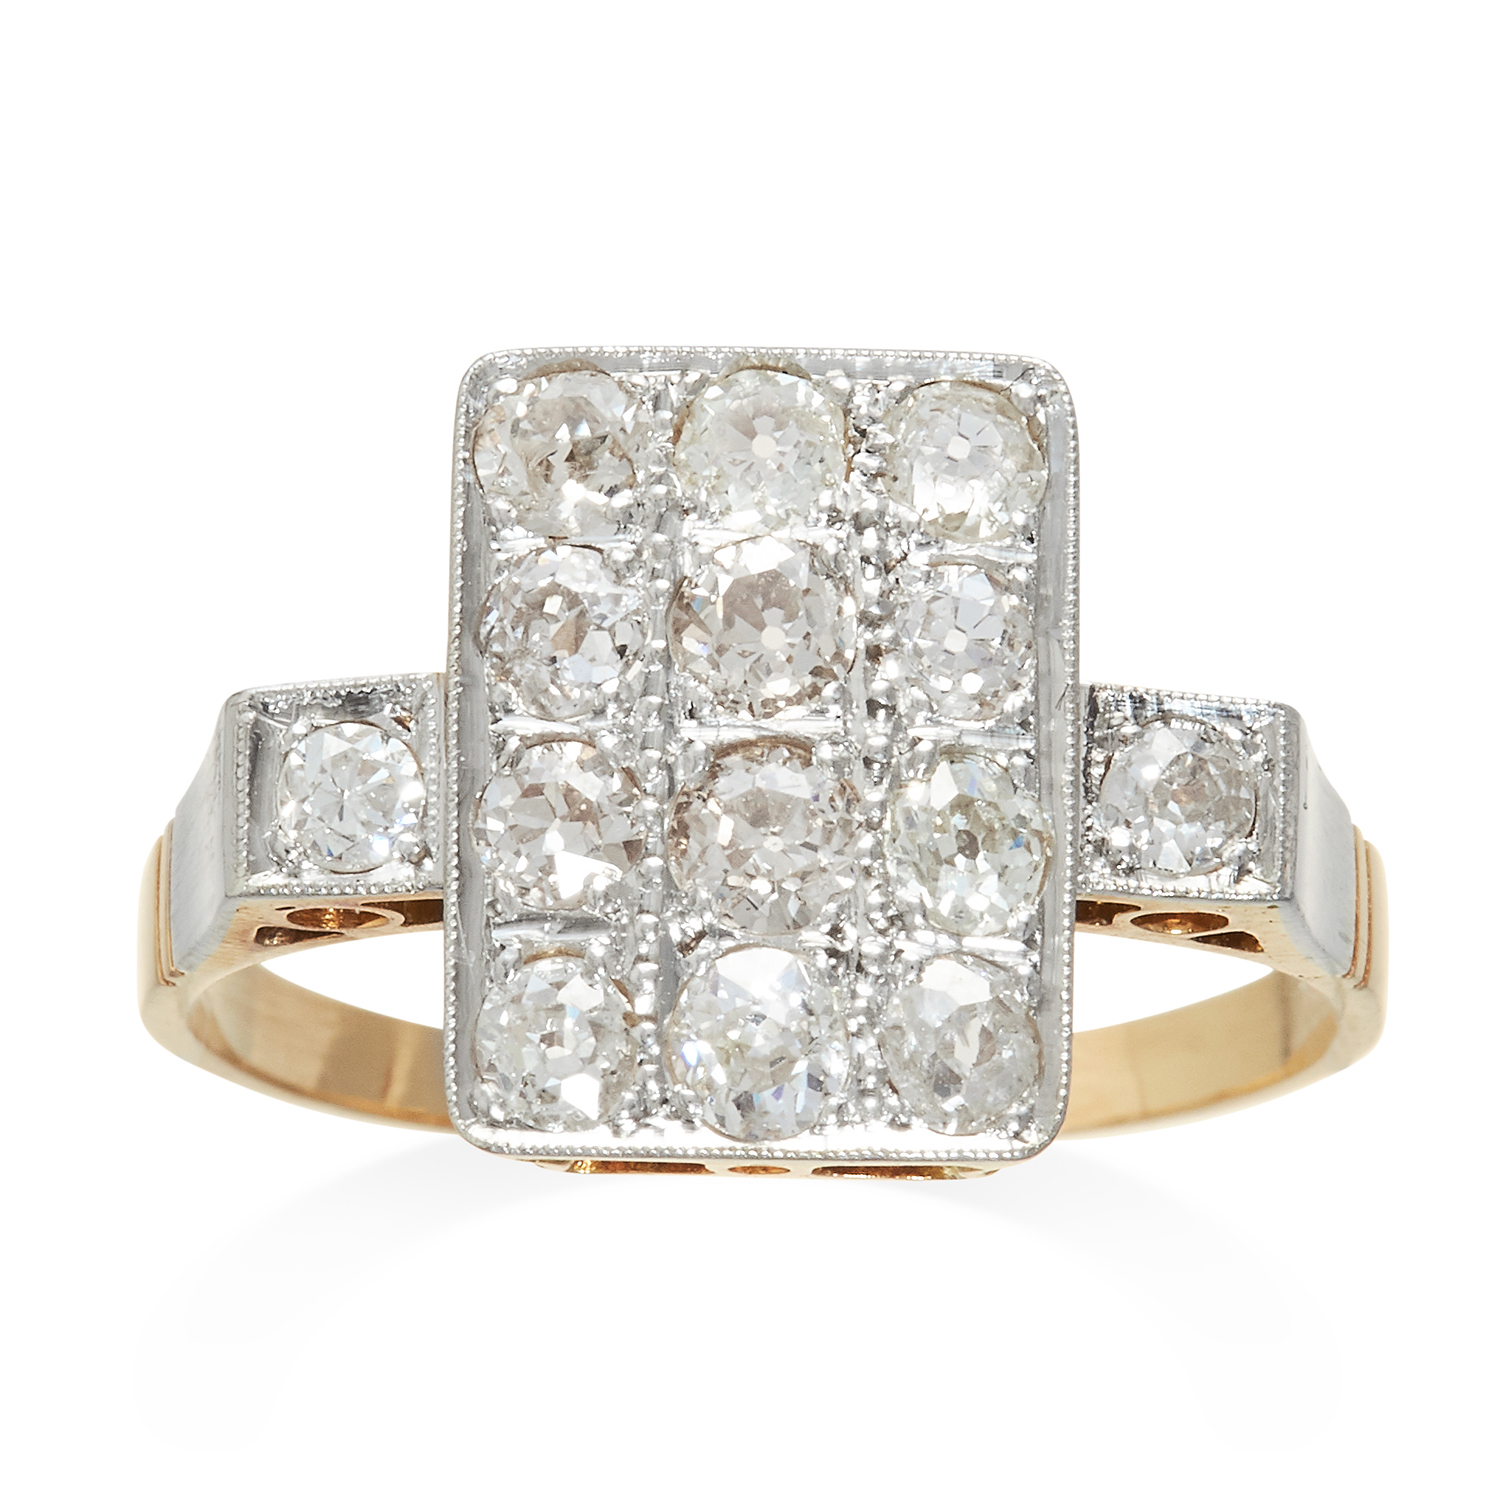 Los 326 - AN ART DECO DIAMOND RING in yellow gold and platinum, jewelled with fourteen round cut diamonds